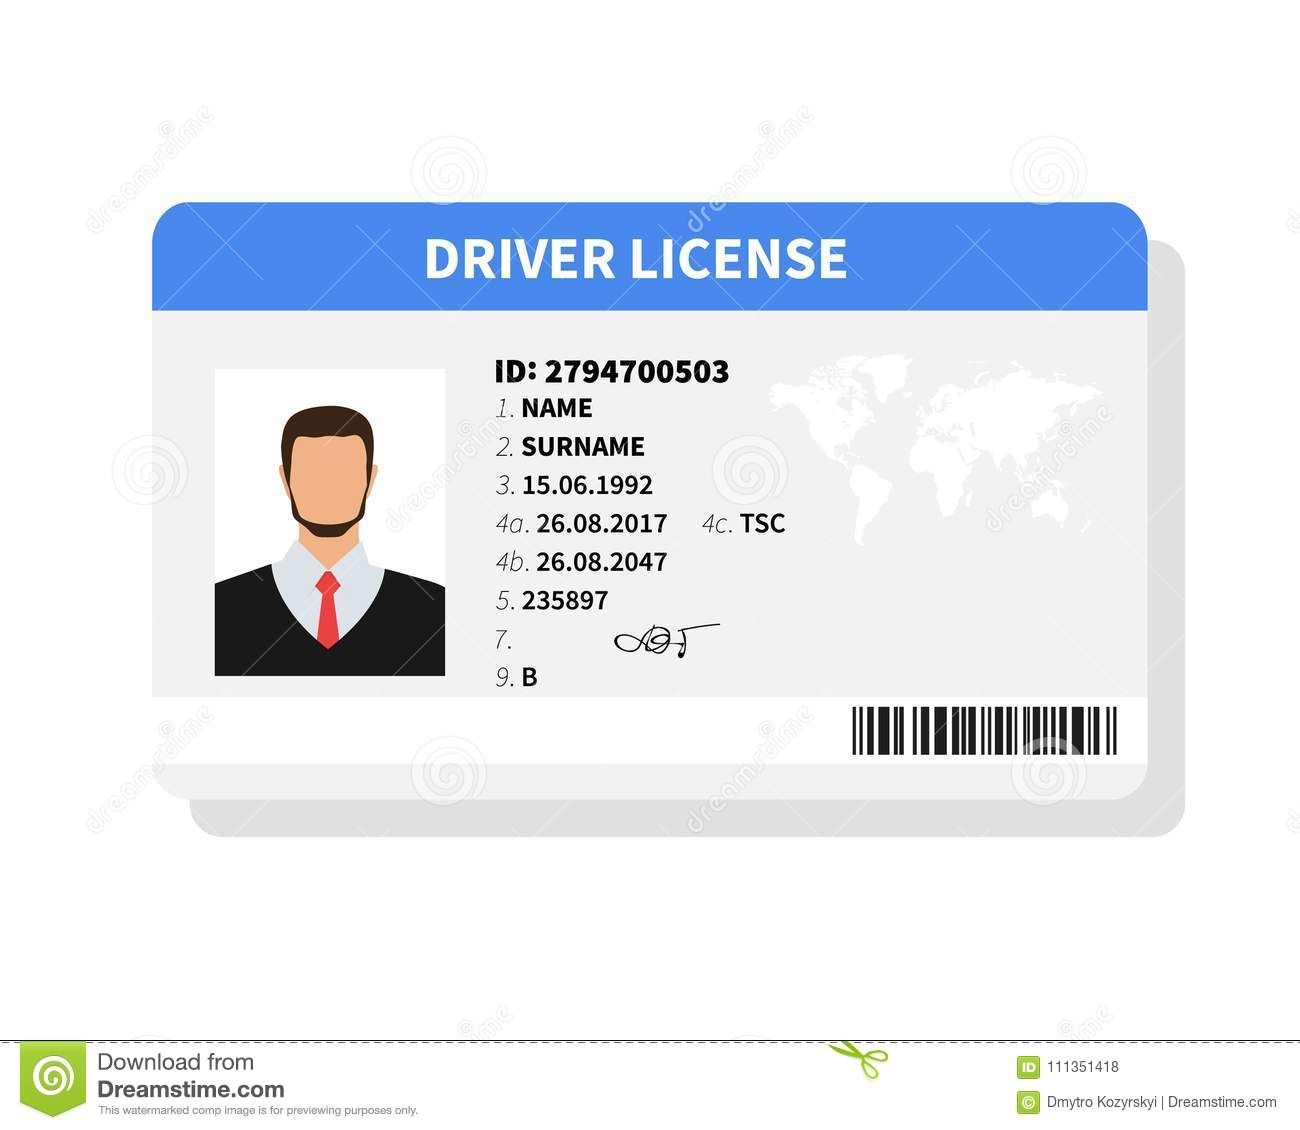 Flat Man Driver License Plastic Card Template Inside Personal Identification Card Templ Id Card Template Father S Day Card Template Business Card Template Word